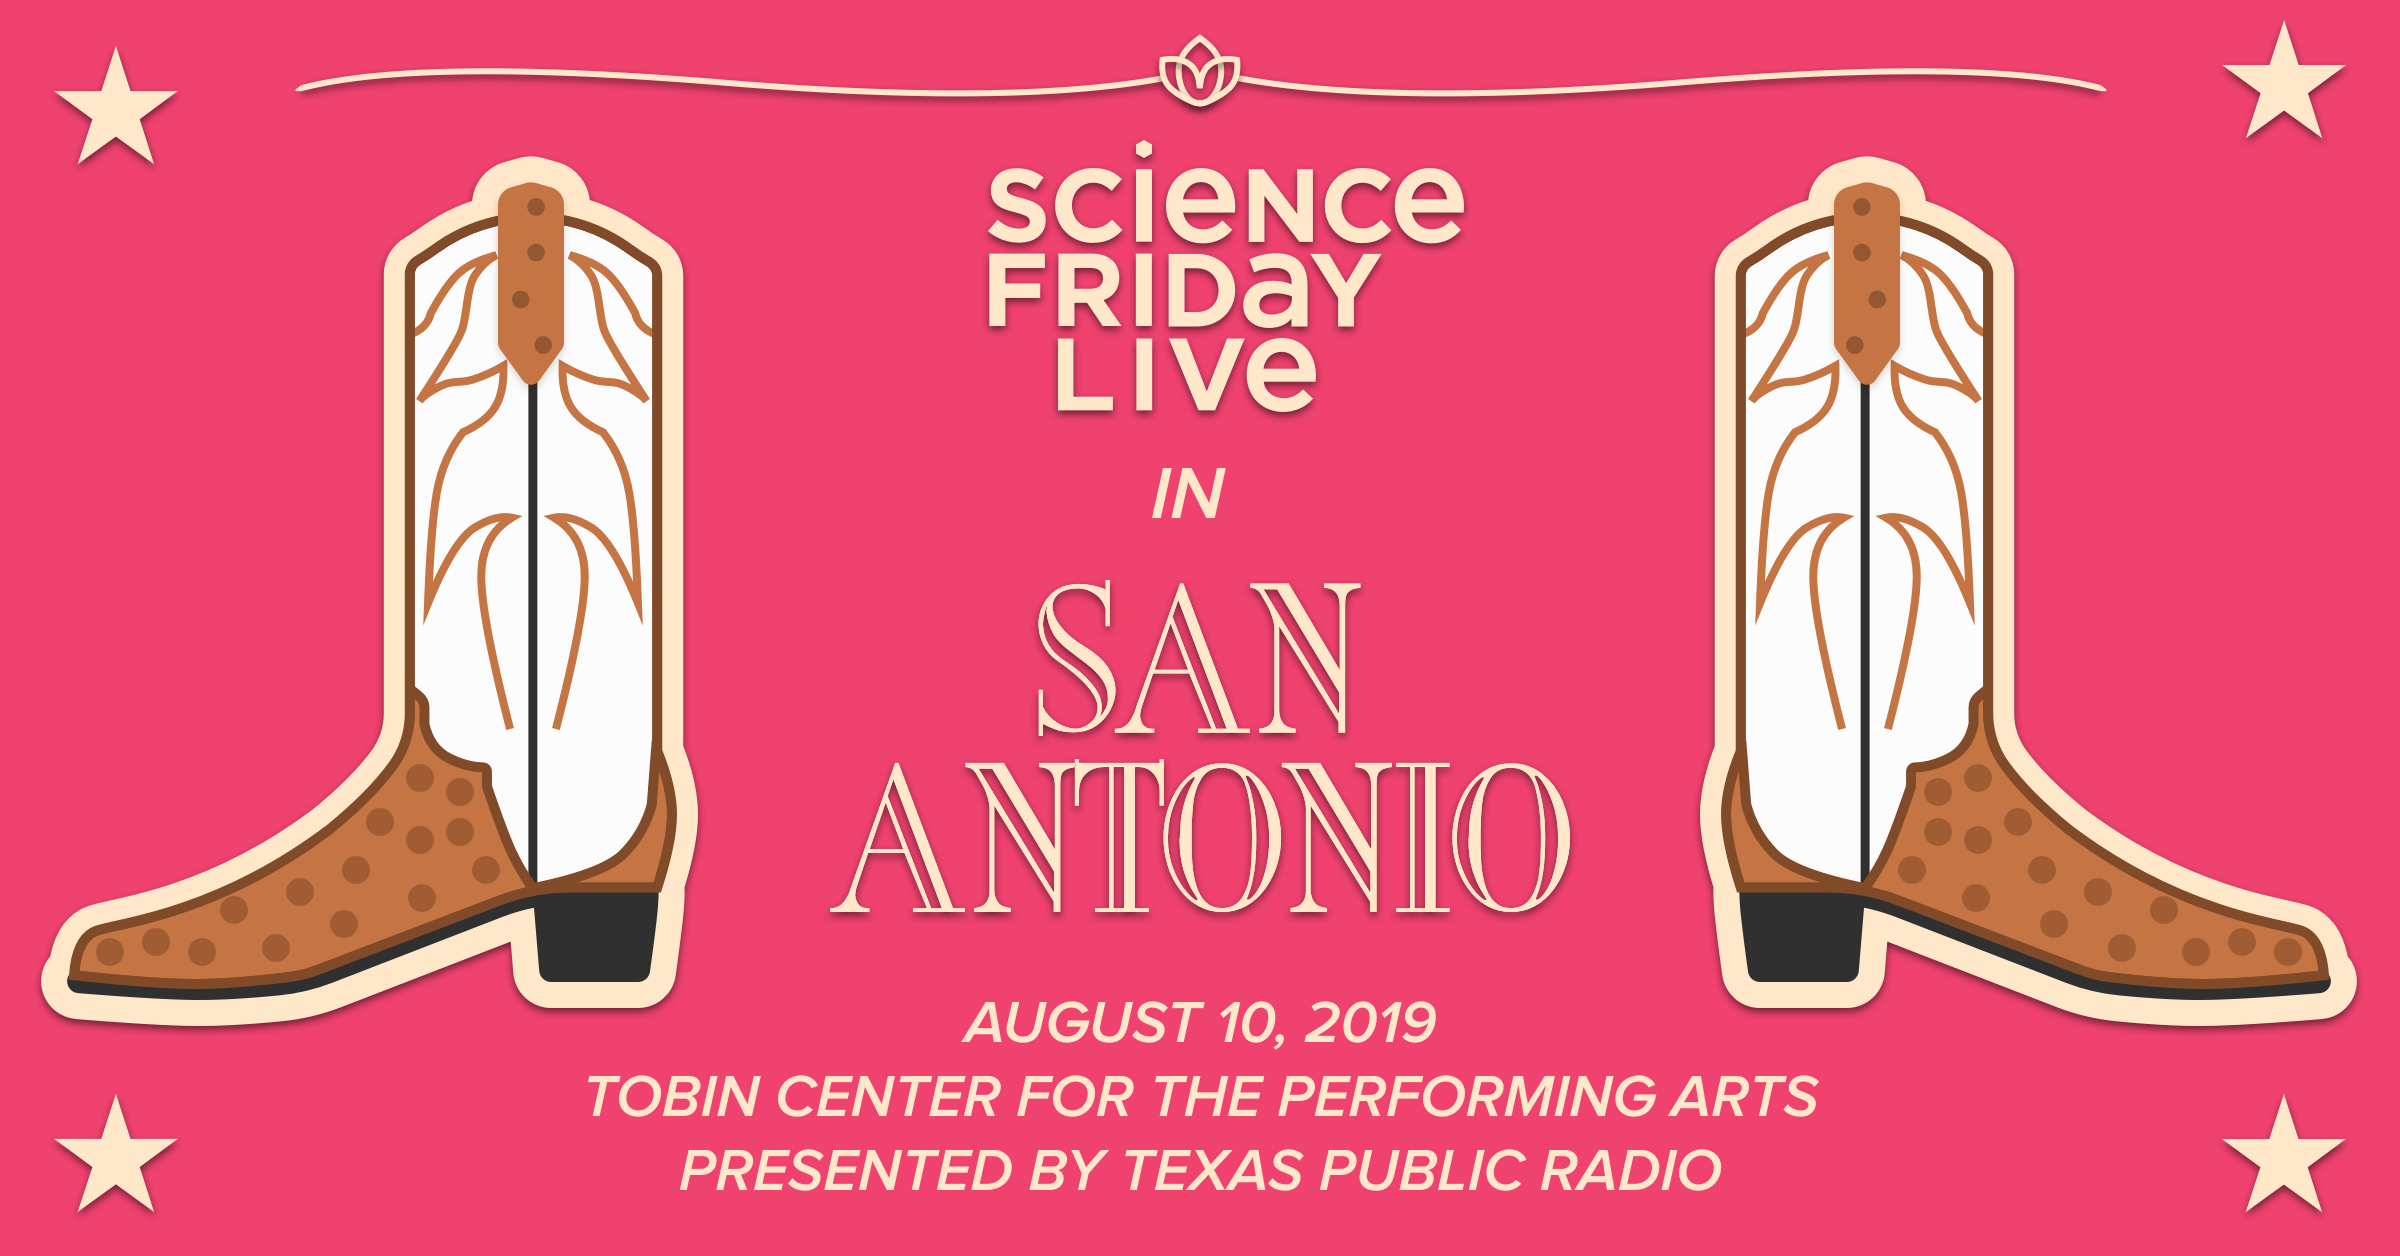 two graphic boots with text in between that says 'science friday live in san antonio'